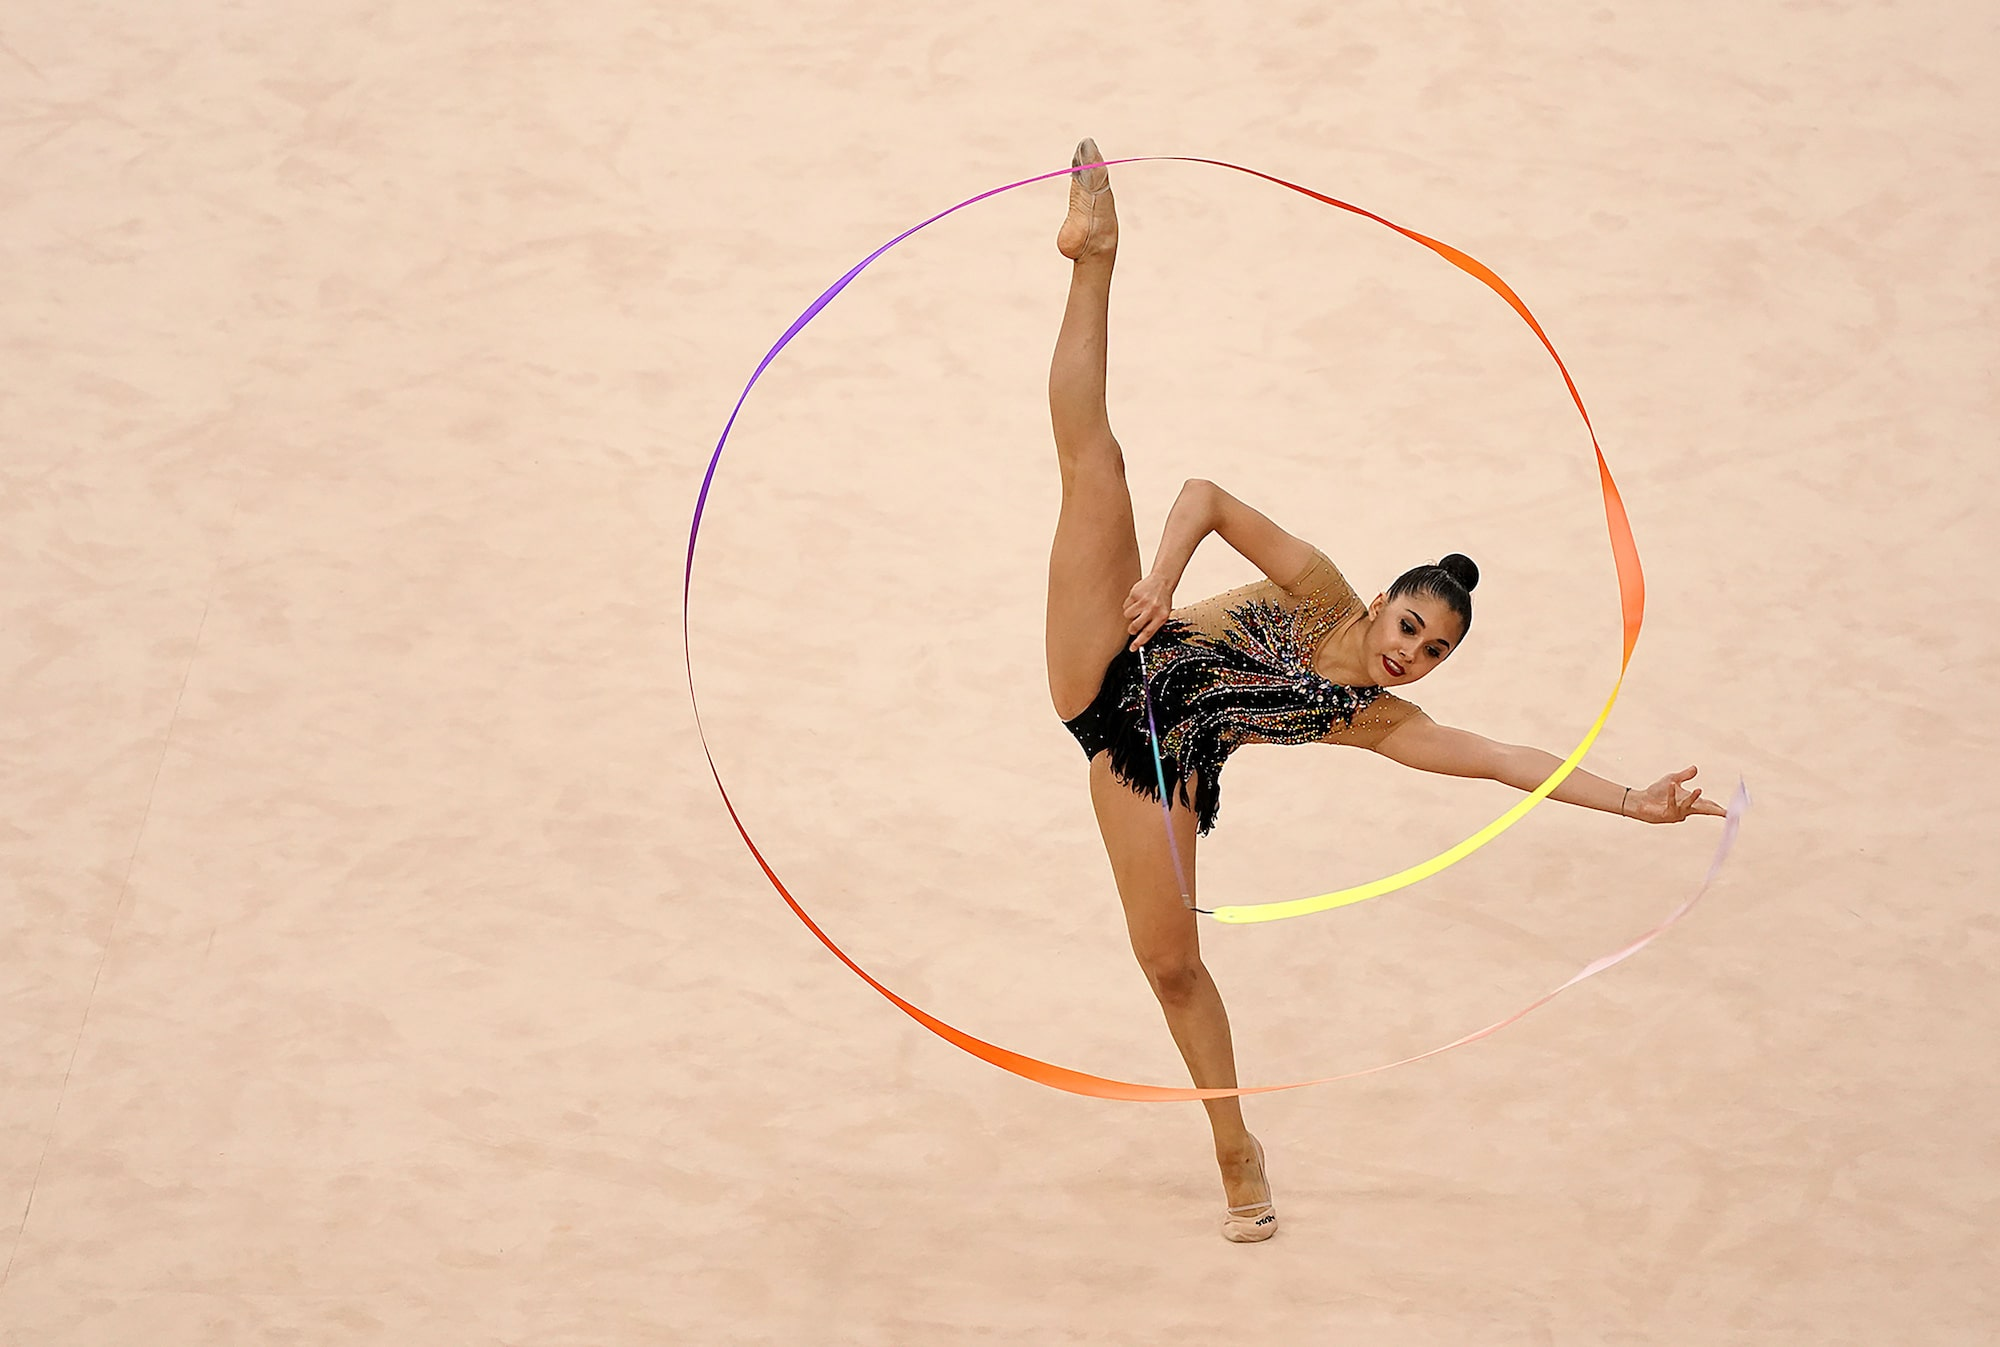 Bob-Martin-sony-alpha-9-gymnast-twirling-a-ribbon-into-a-circle